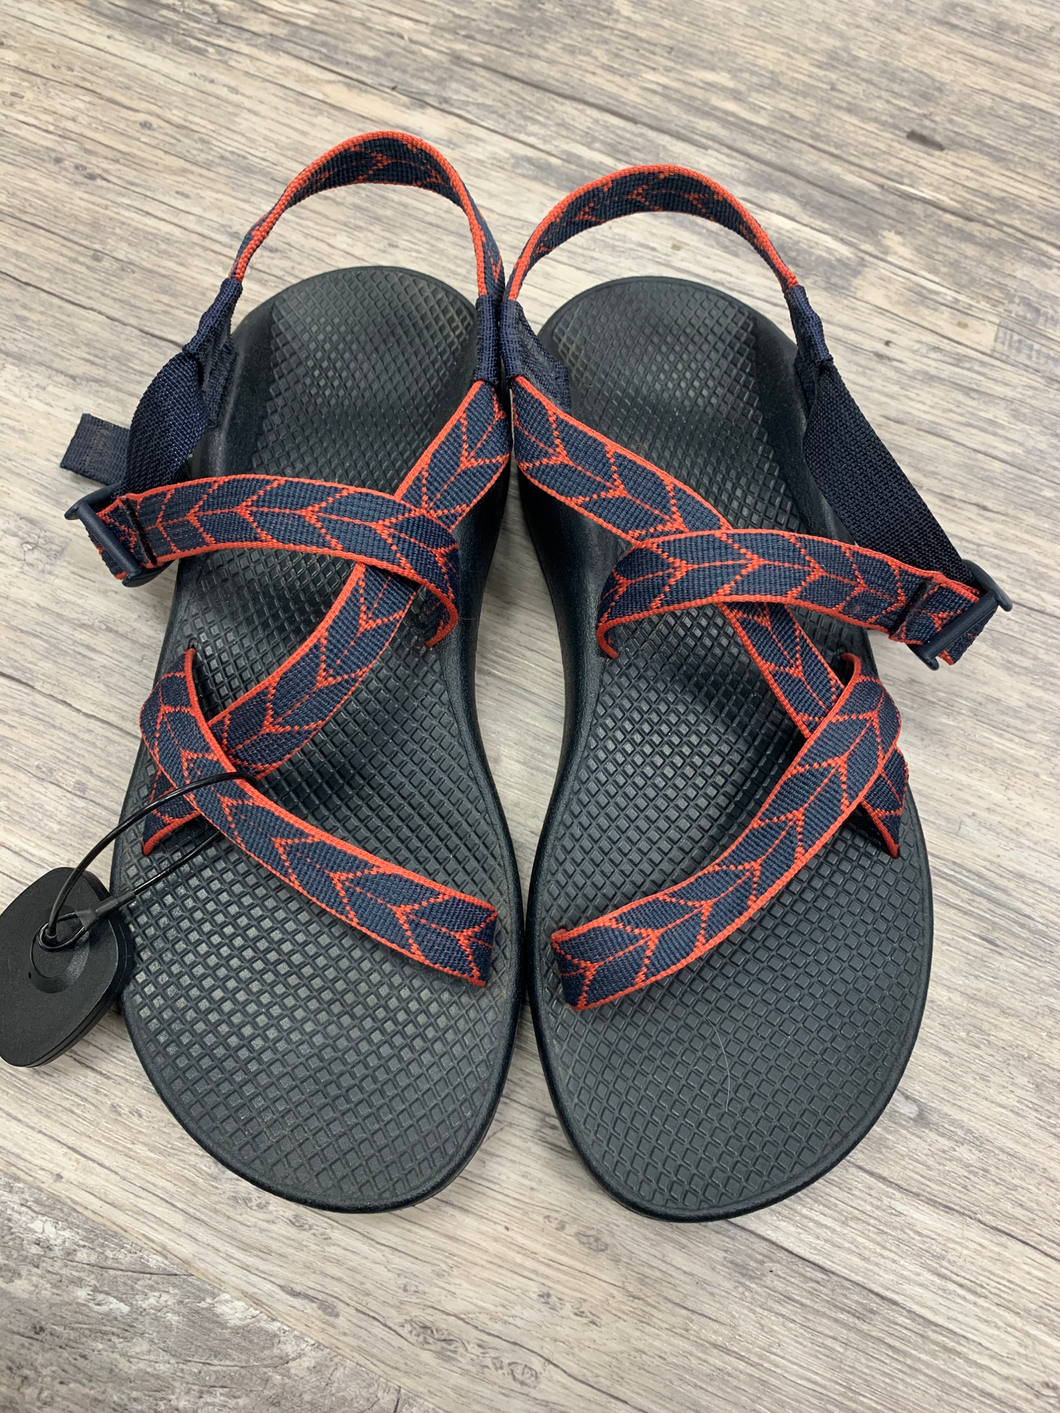 Chaco Sandals Womens 10